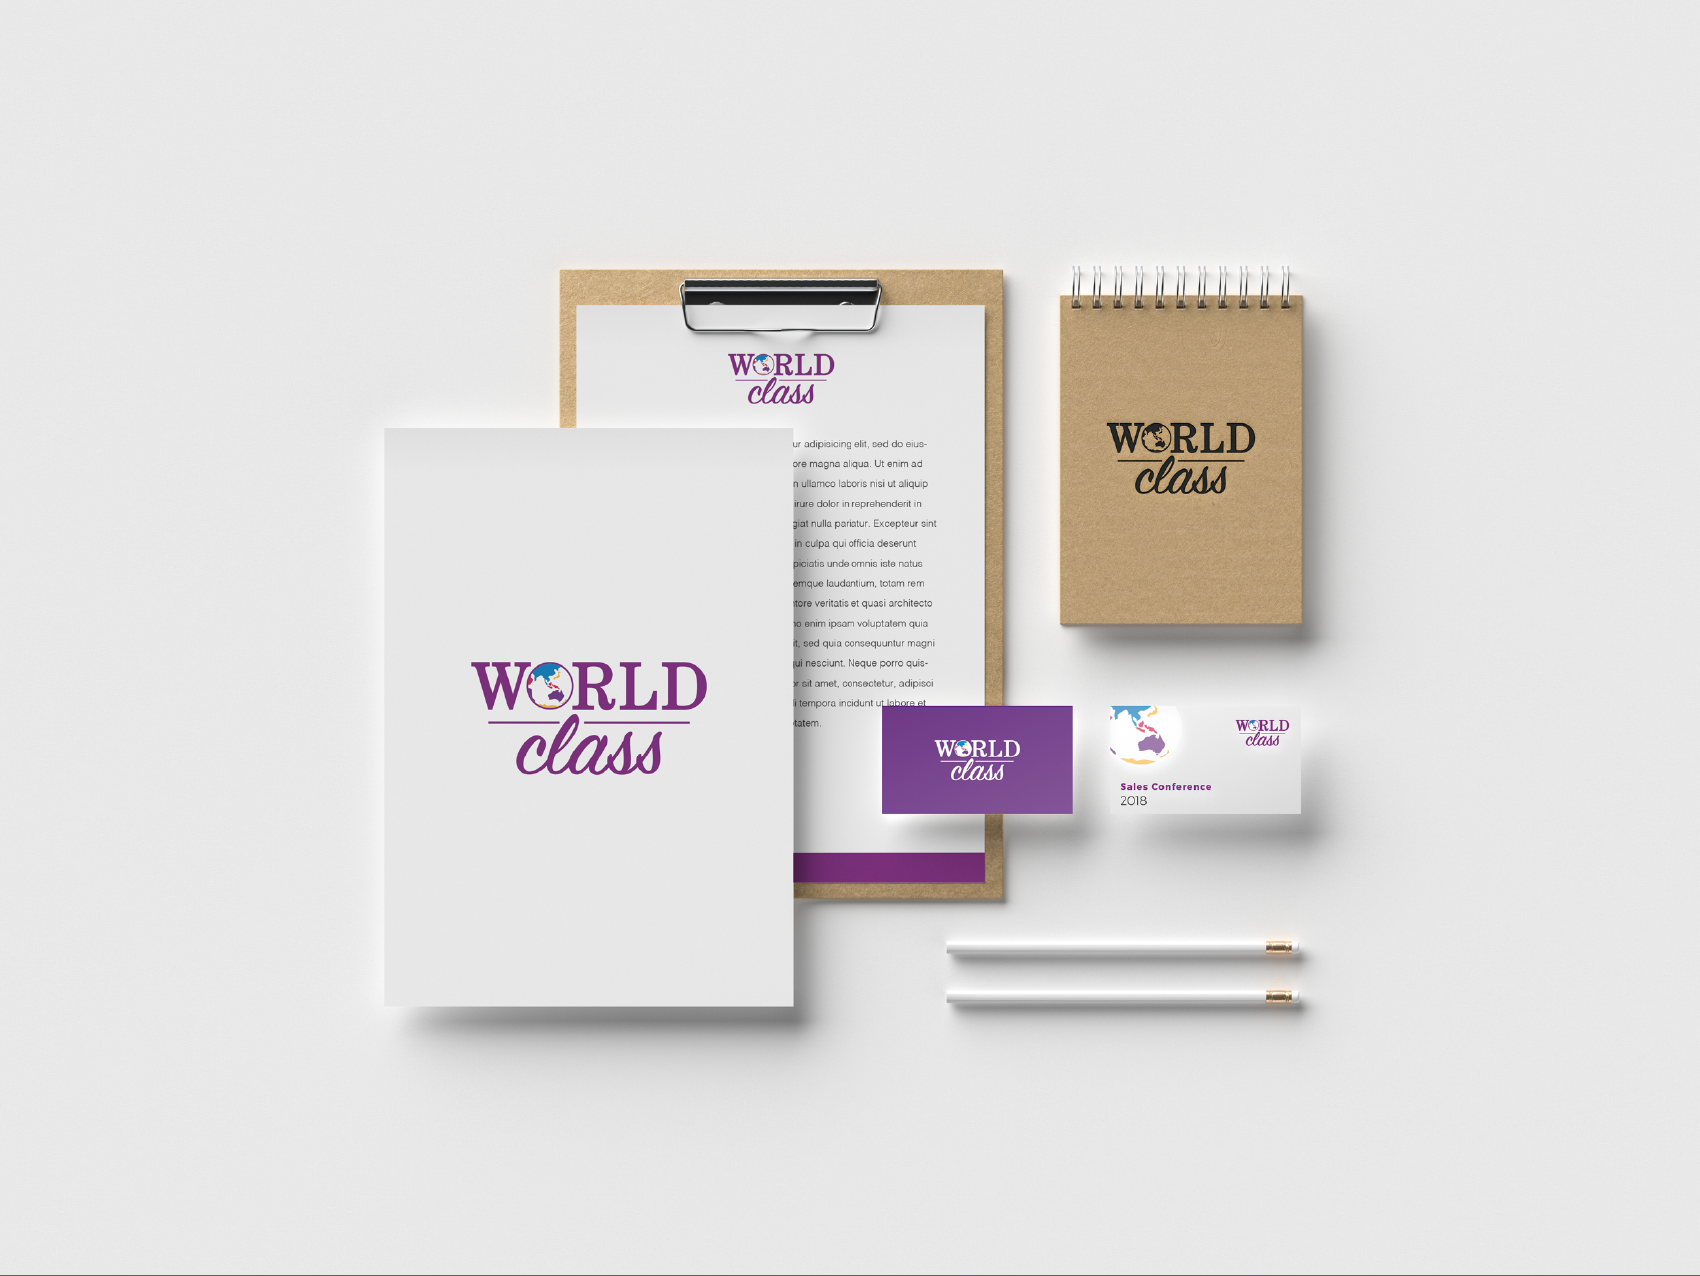 World Class business collateral